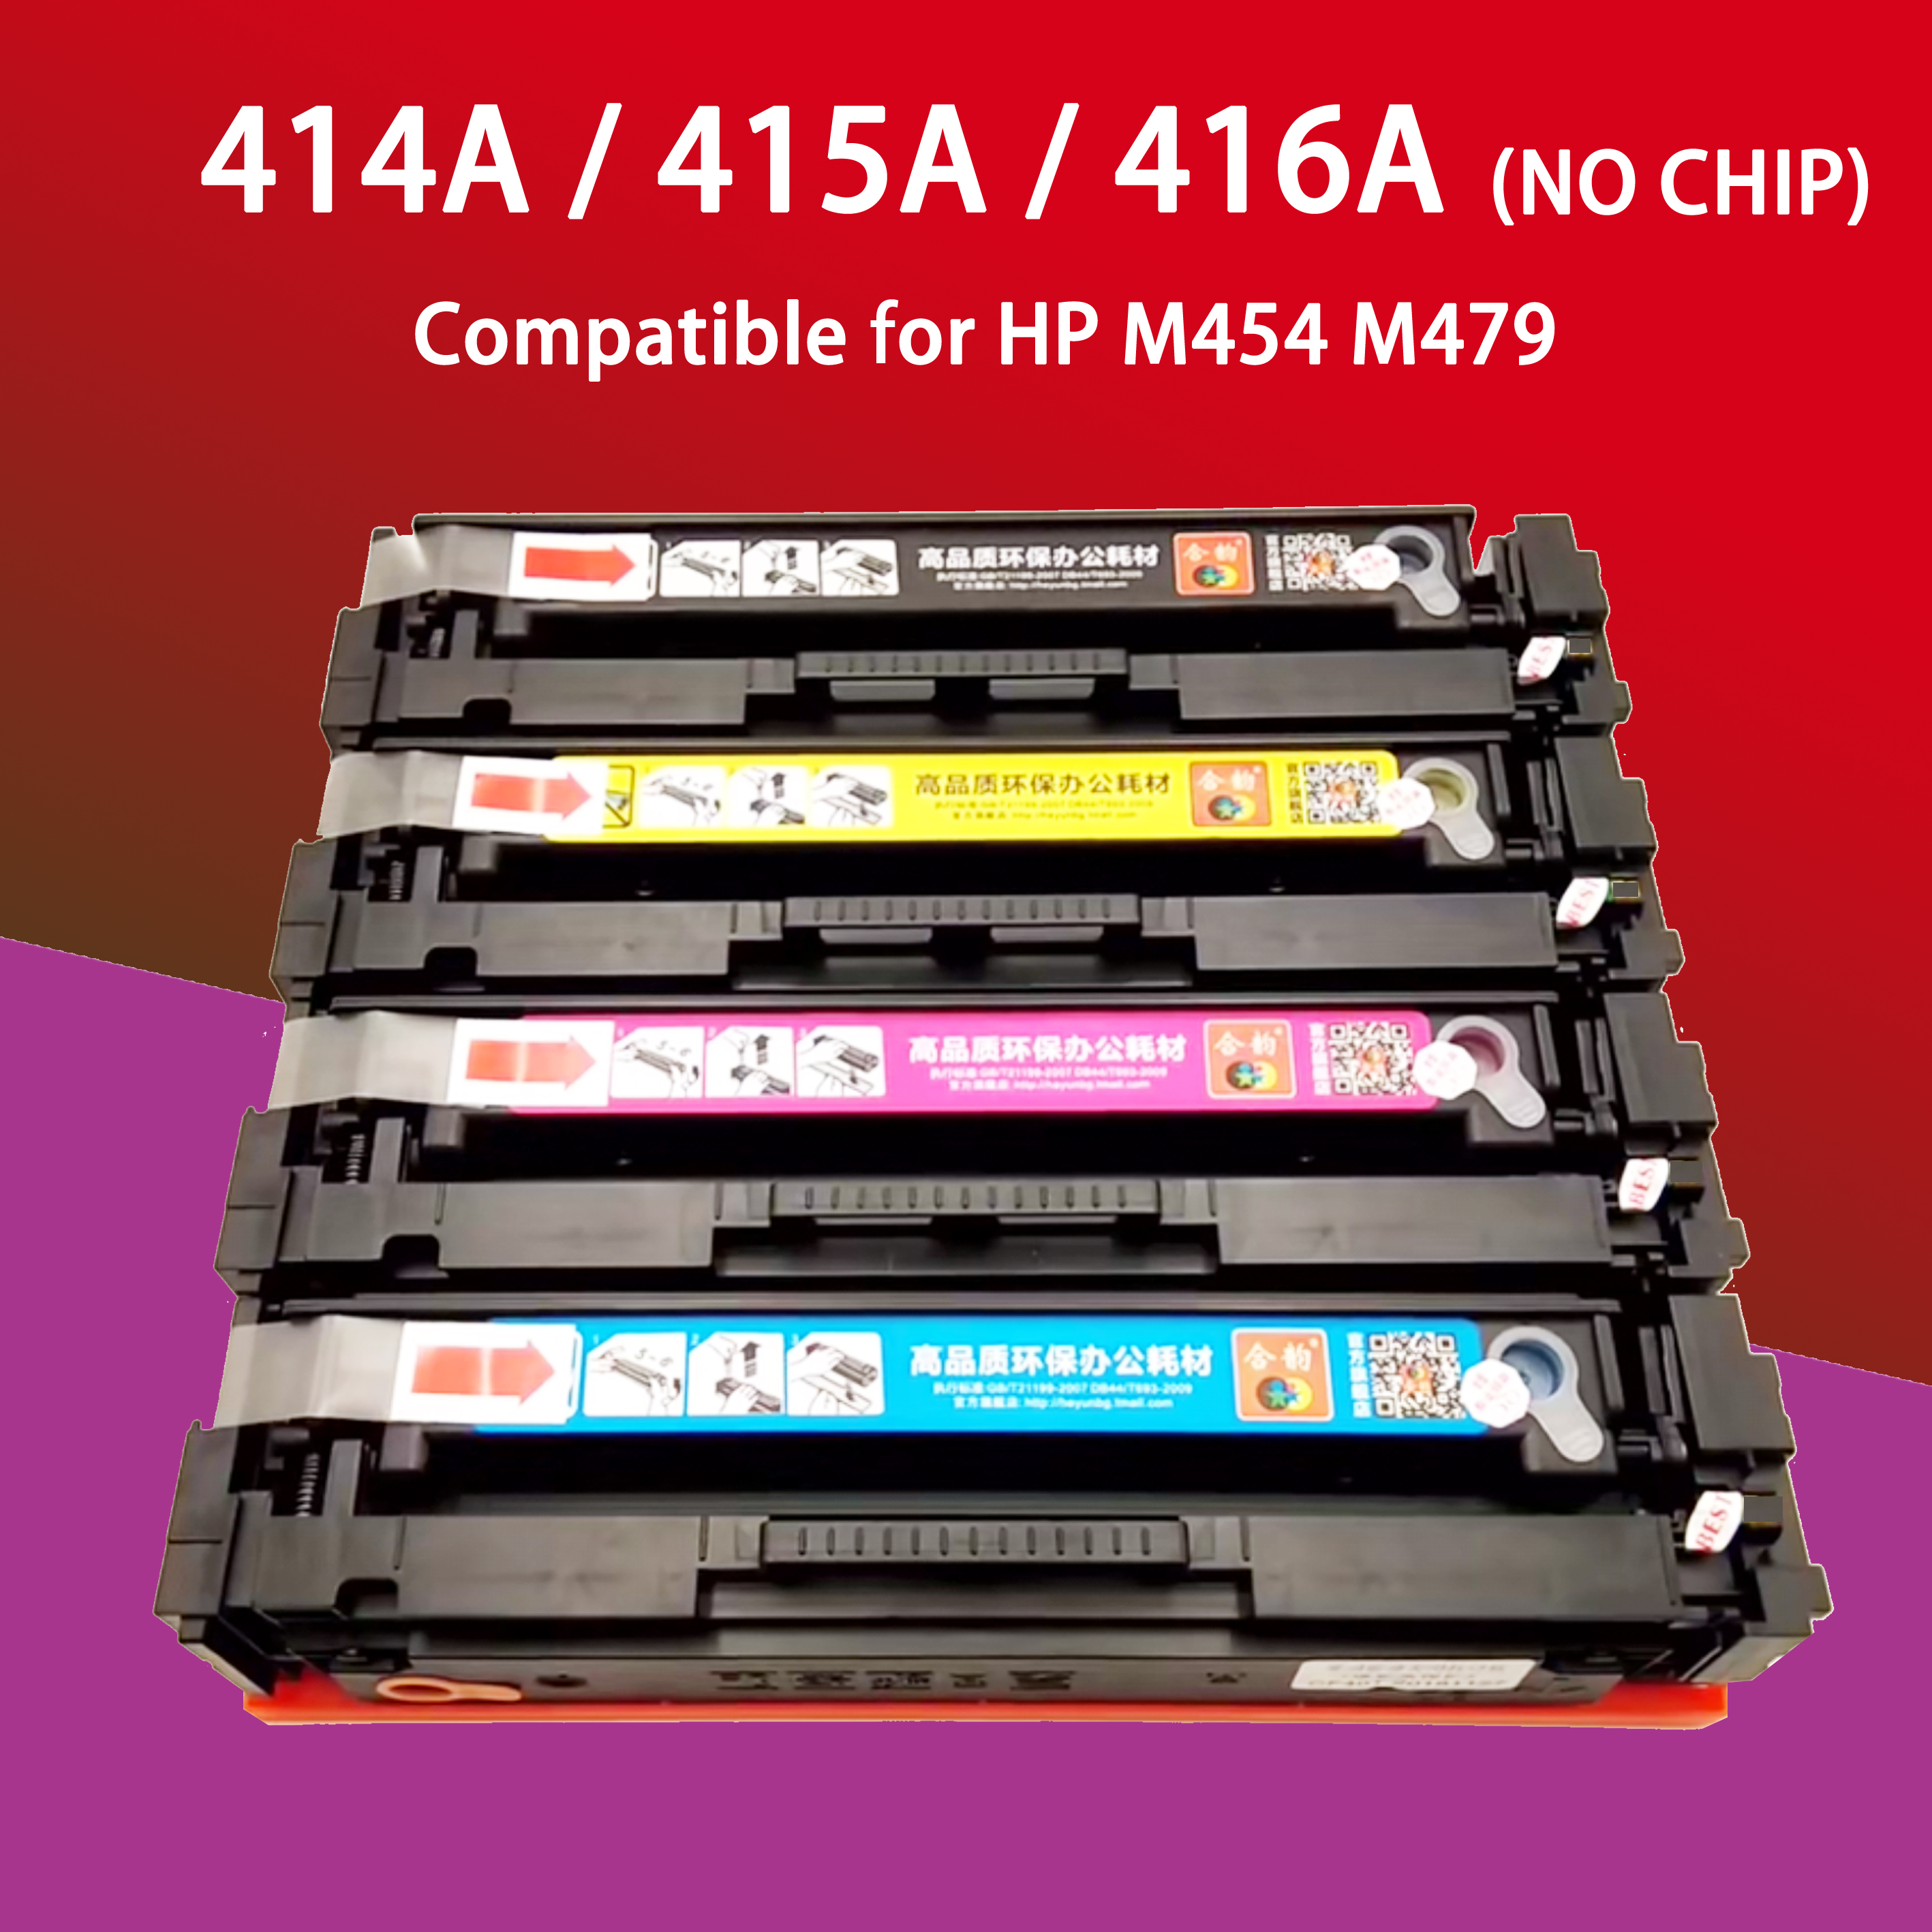 Misee Compatible Toner Cartridge Replacement For HP 414A 415A 416A Laserjet Pro M454 M454dw/nw MFP M479 M479dw M479fdw (No Chip)